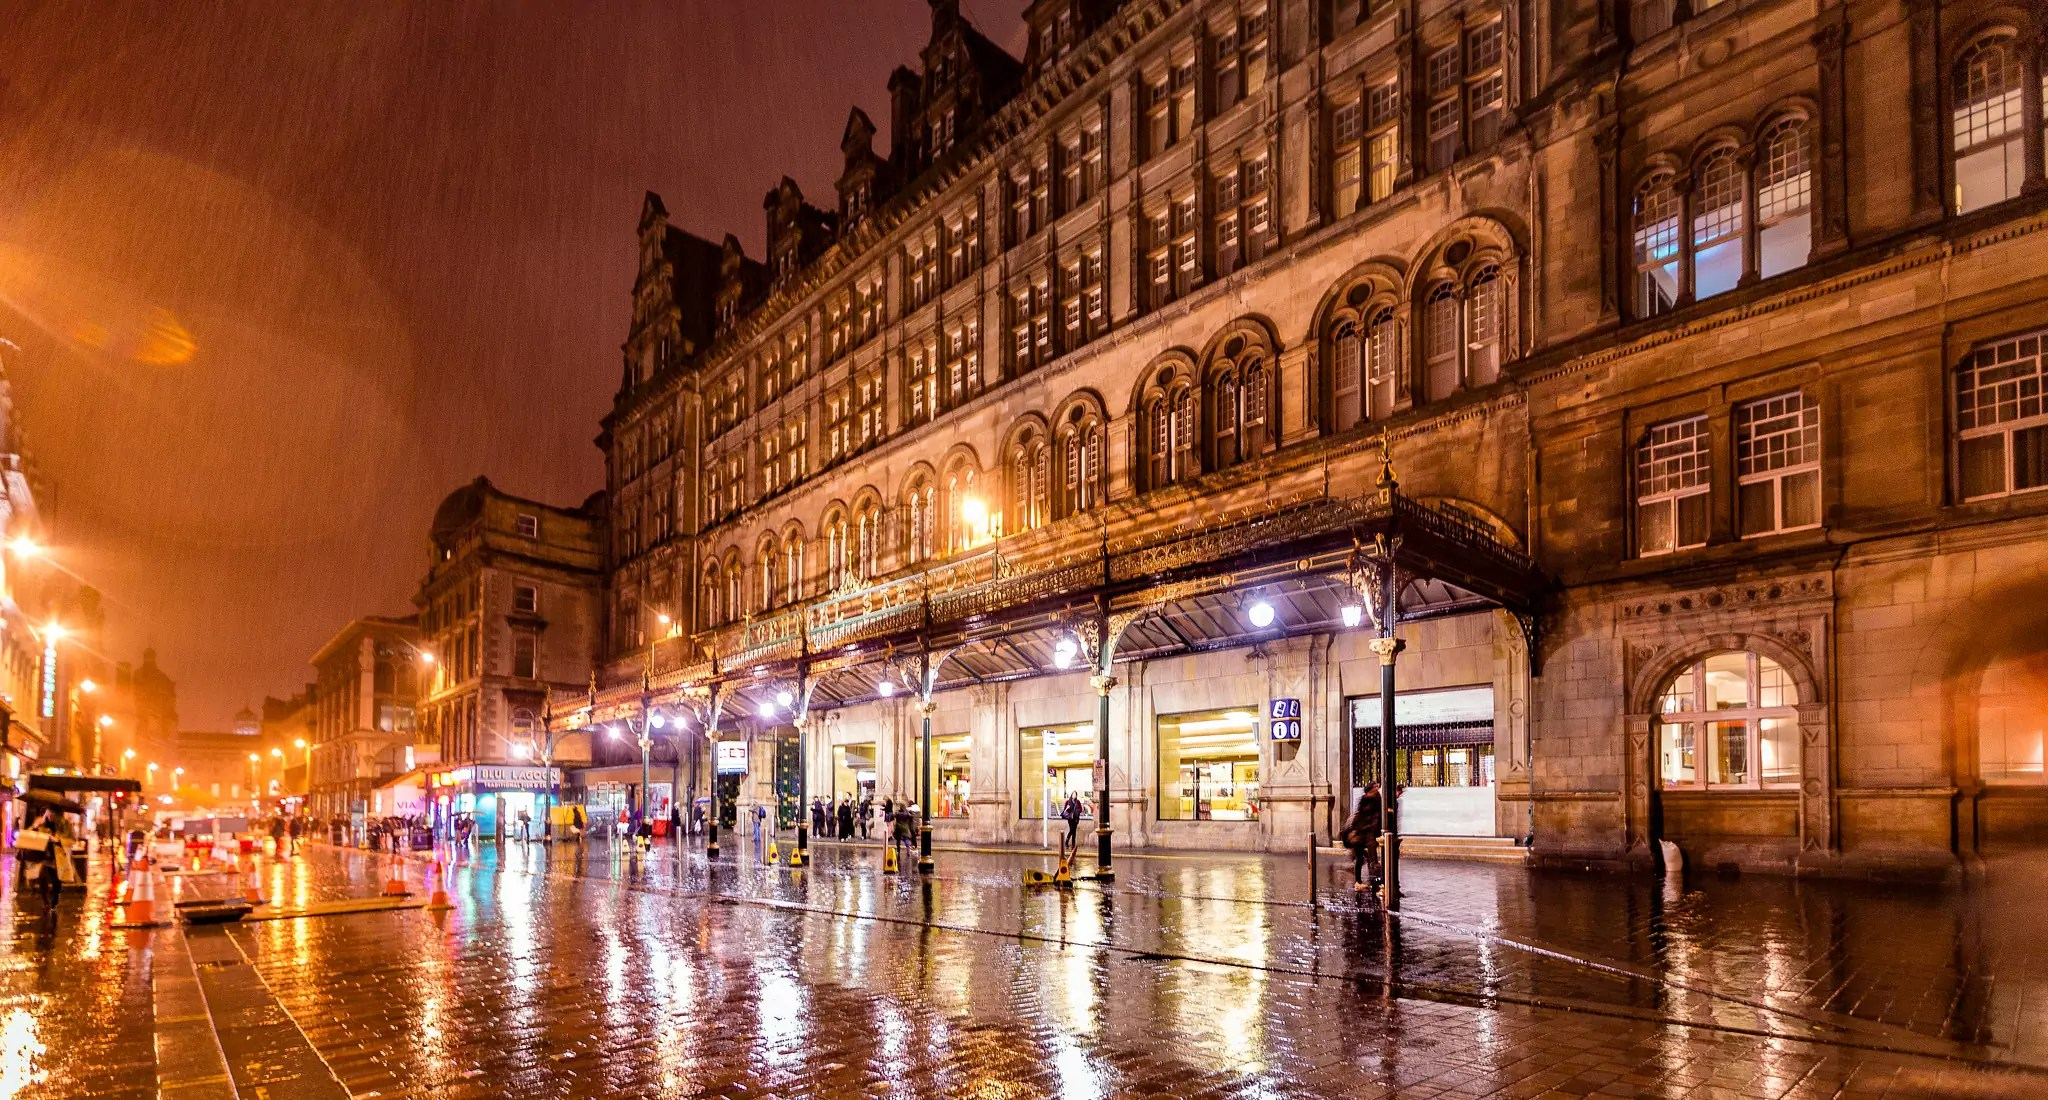 Rainy Glasgow Central Station - photo by Tony Webster under CC BY-SA 2.0